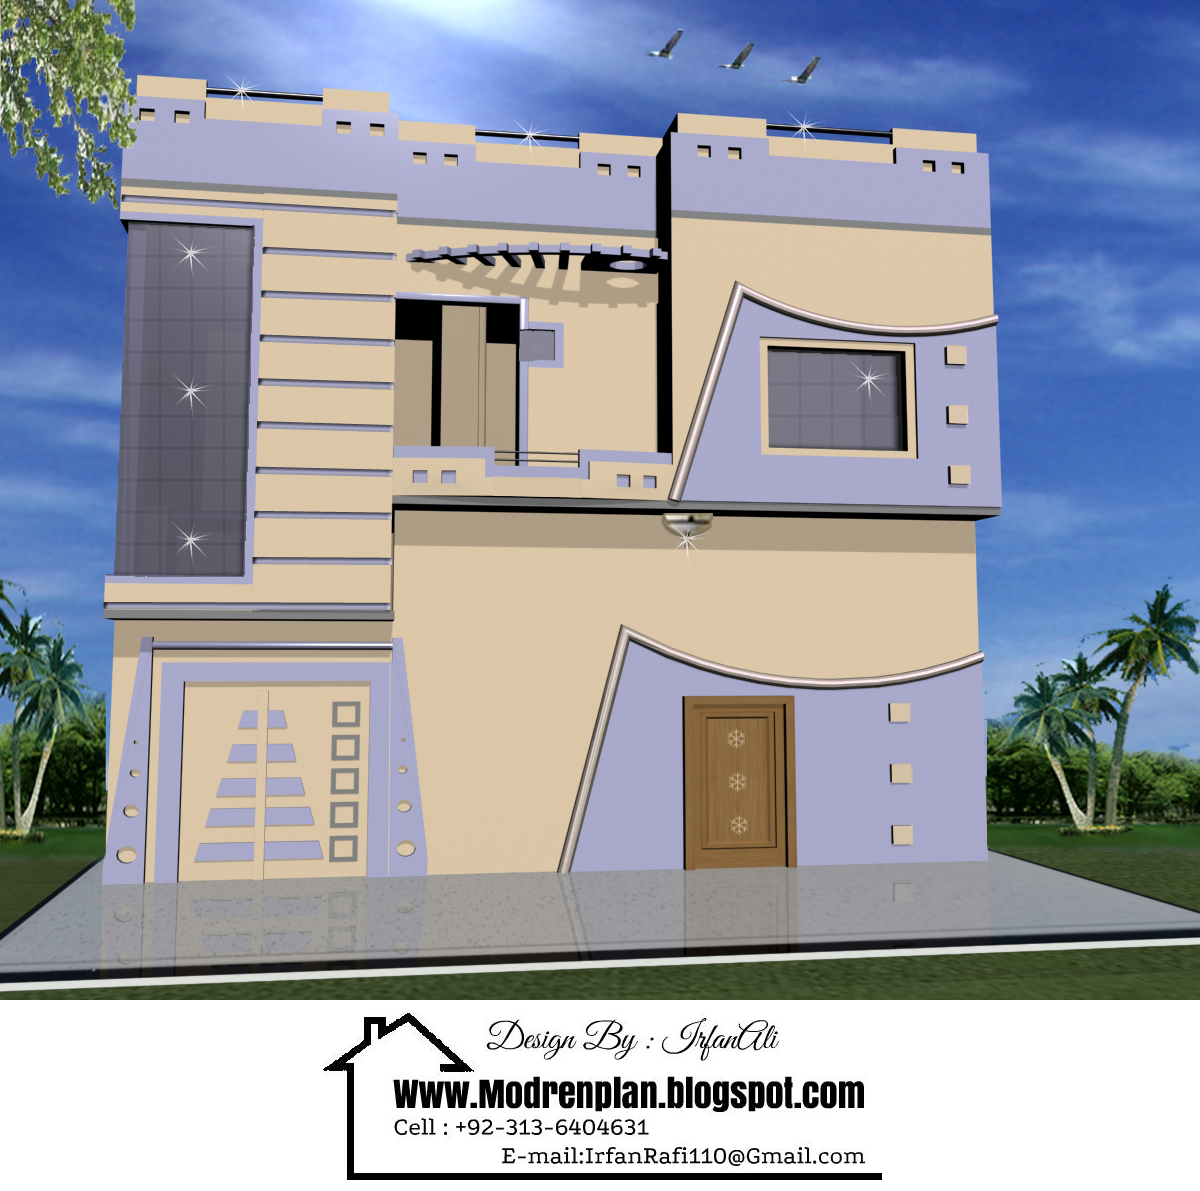 How To Design Home Front Elevation : Front elevation in pakistan india